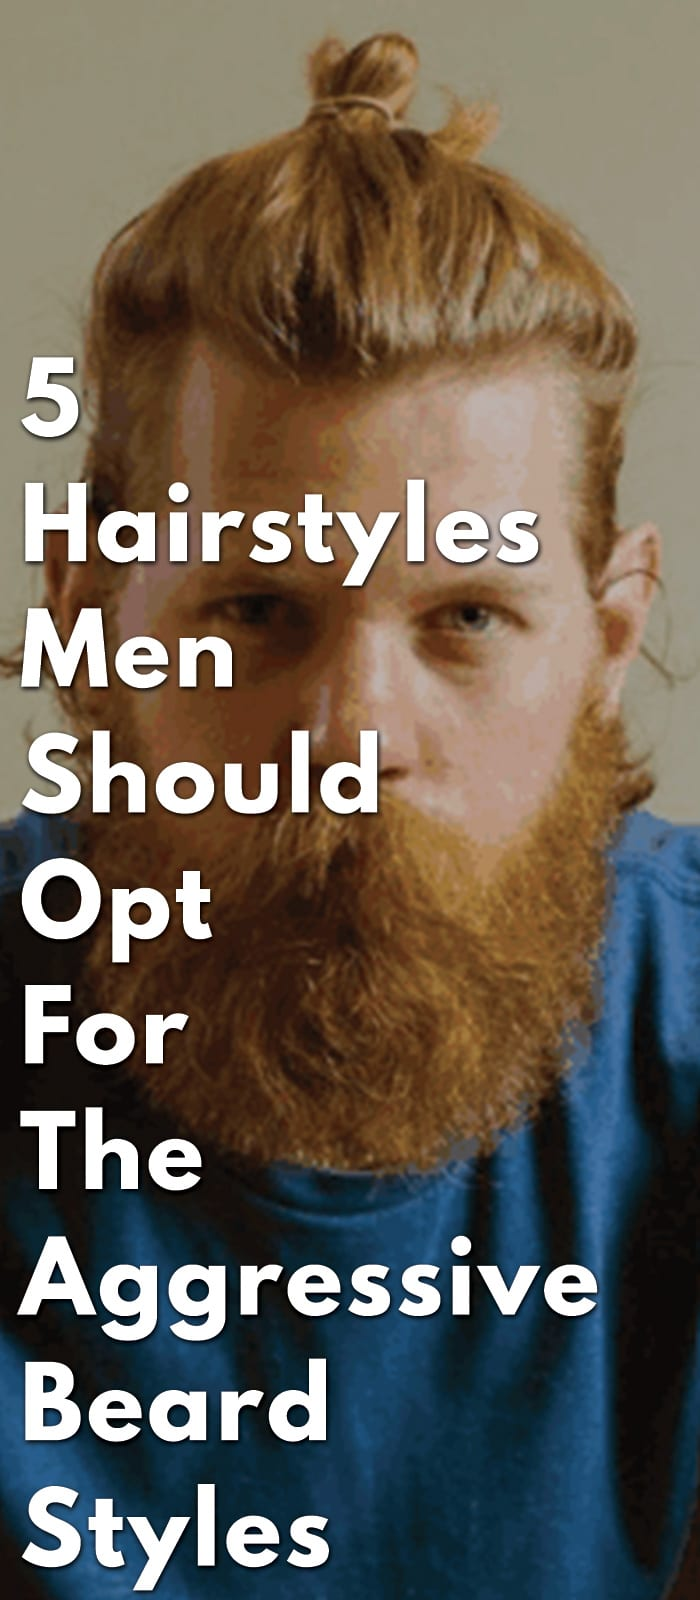 5-Hairstyles-Men-Should-Opt-For-The-Aggressive-Beard-Styles